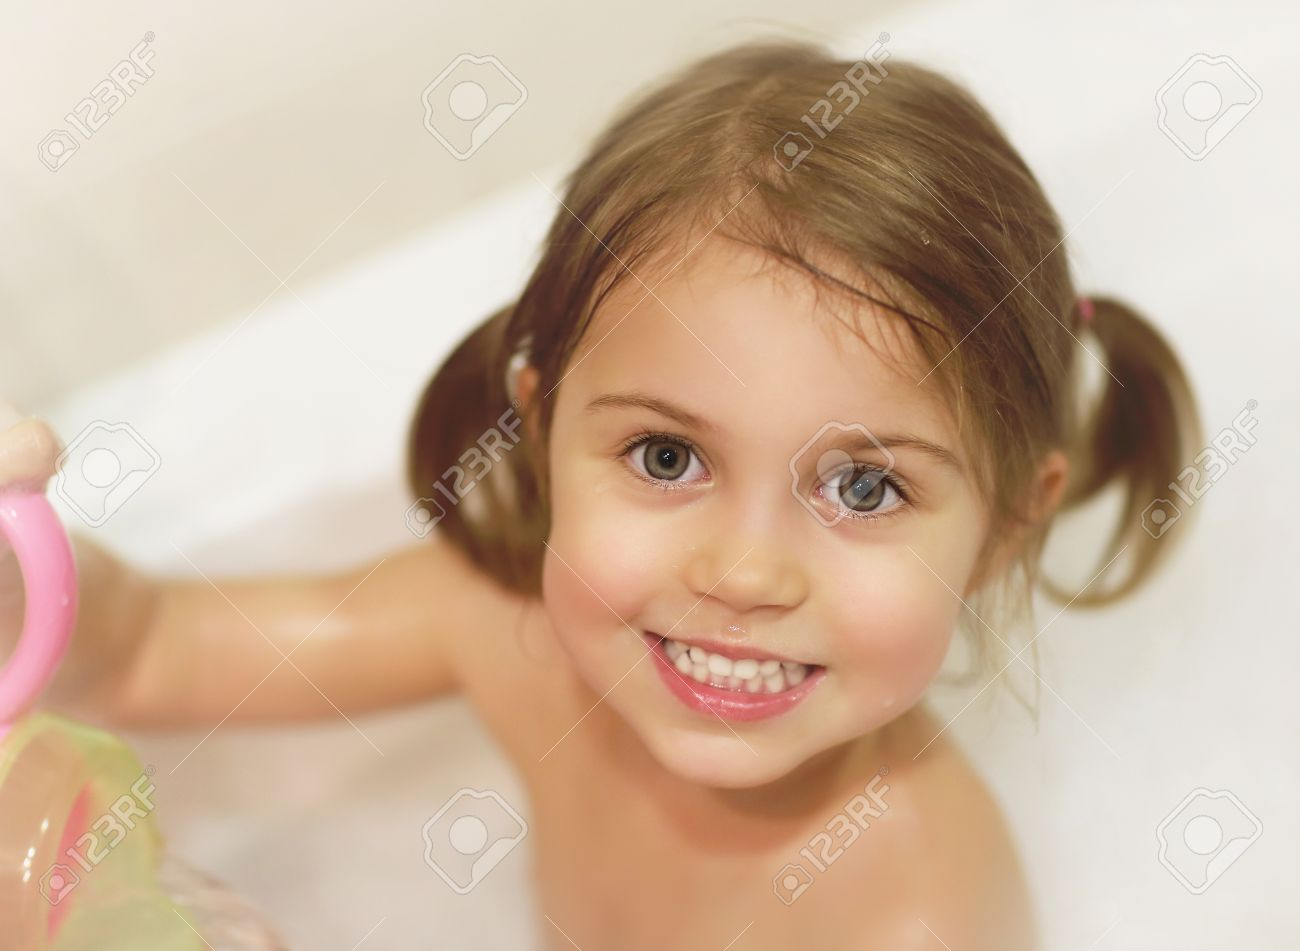 photo of cute baby girl taking bath happy childhood child s